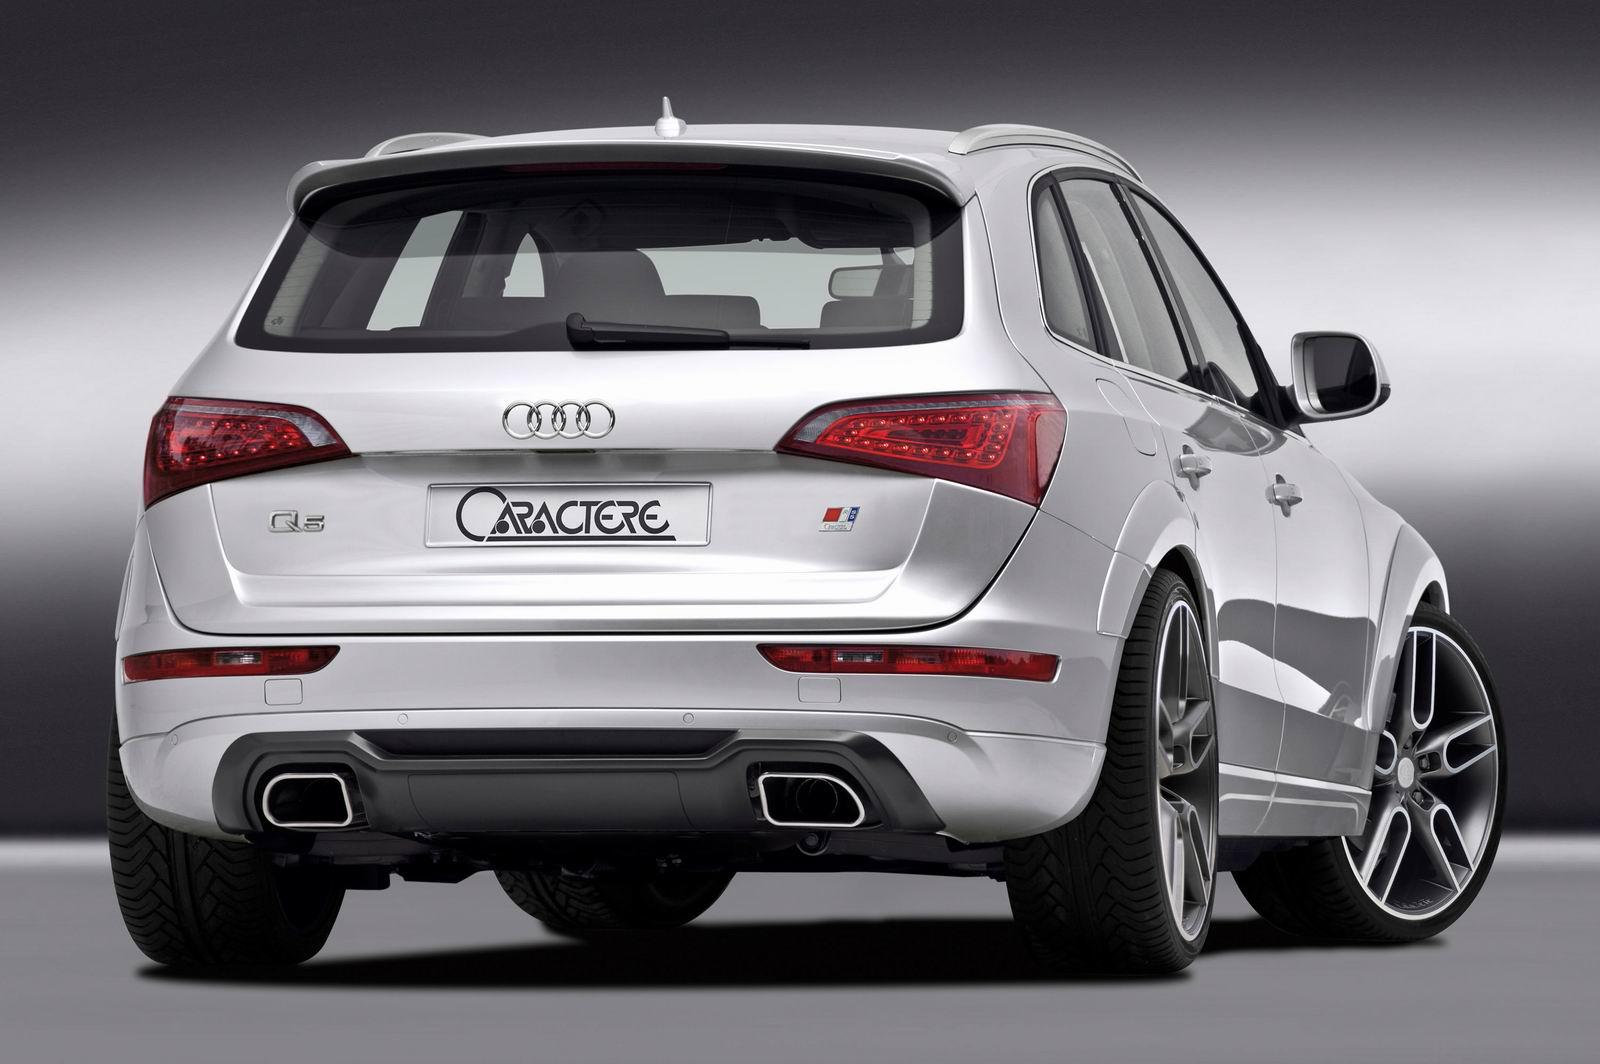 1600x1064 - Audi Q5 Wallpapers 36